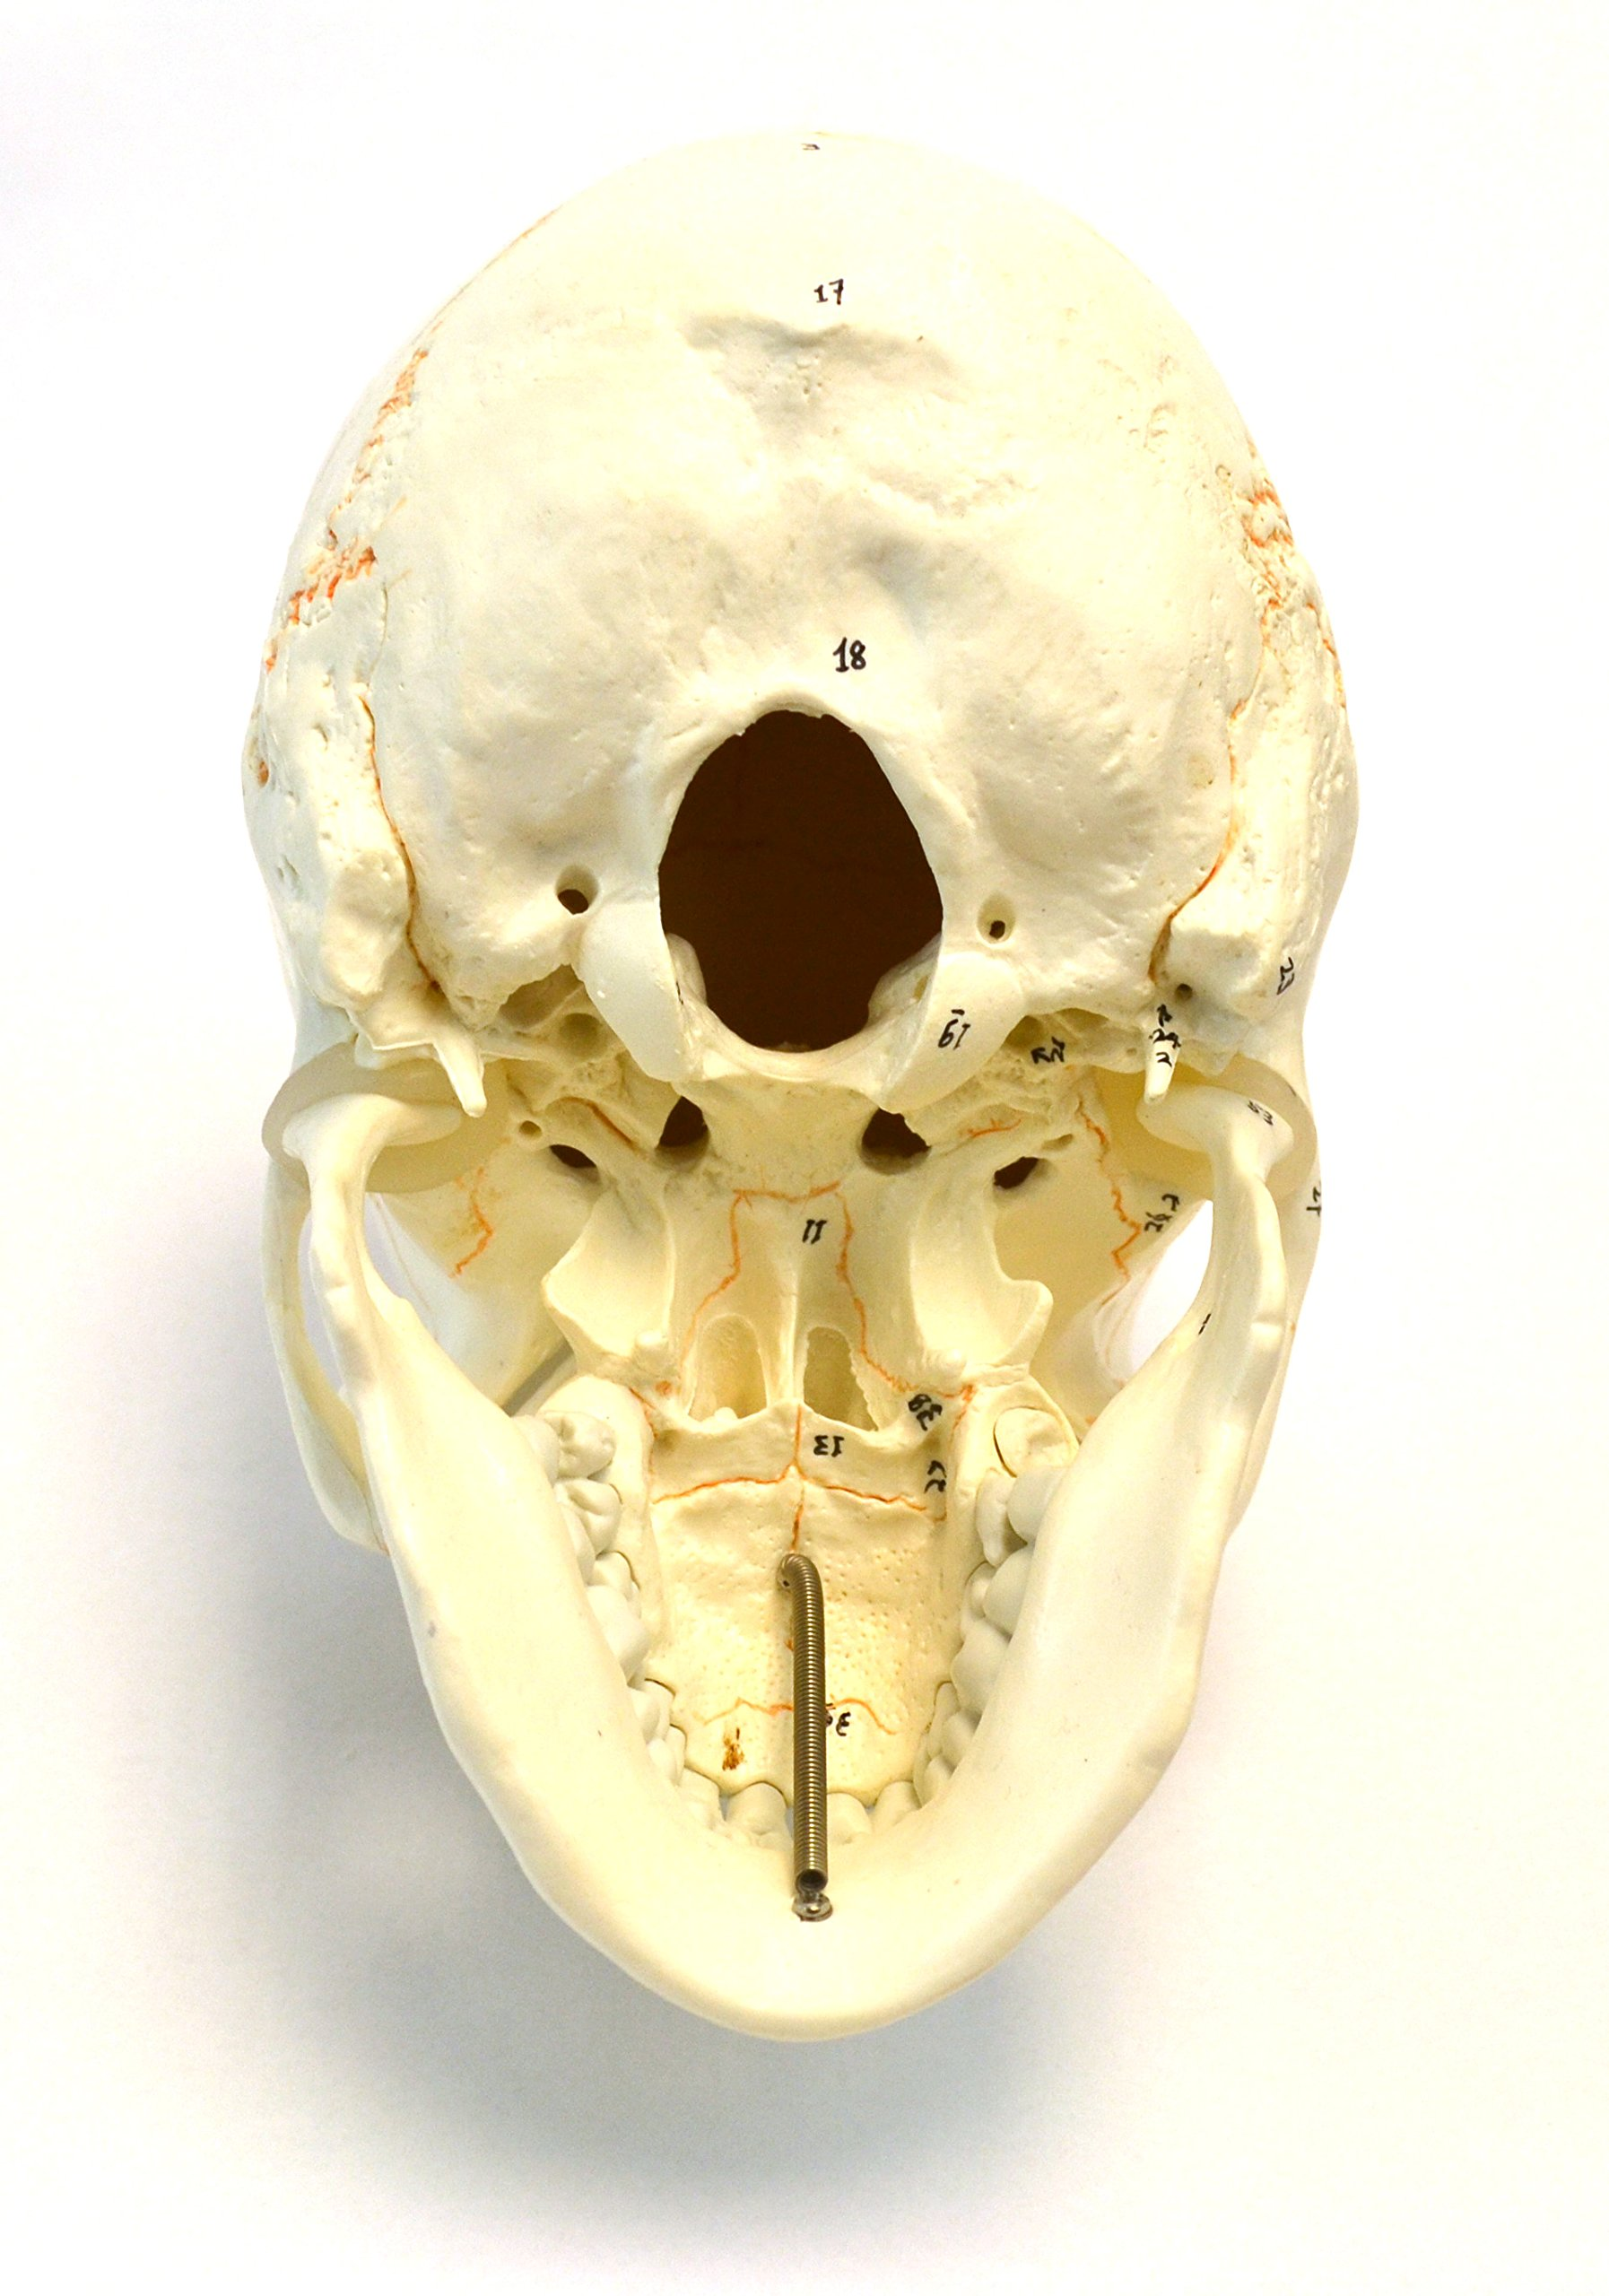 Numbered Human Adult Skull Anatomical Model, Medical Quality, Life Sized (9'' Height) - 3 Part - Removable Skull Cap - Shows Most Major Foramen, Fossa, and Canals - Includes Full Set of Teeth by hBARSCI (Image #4)